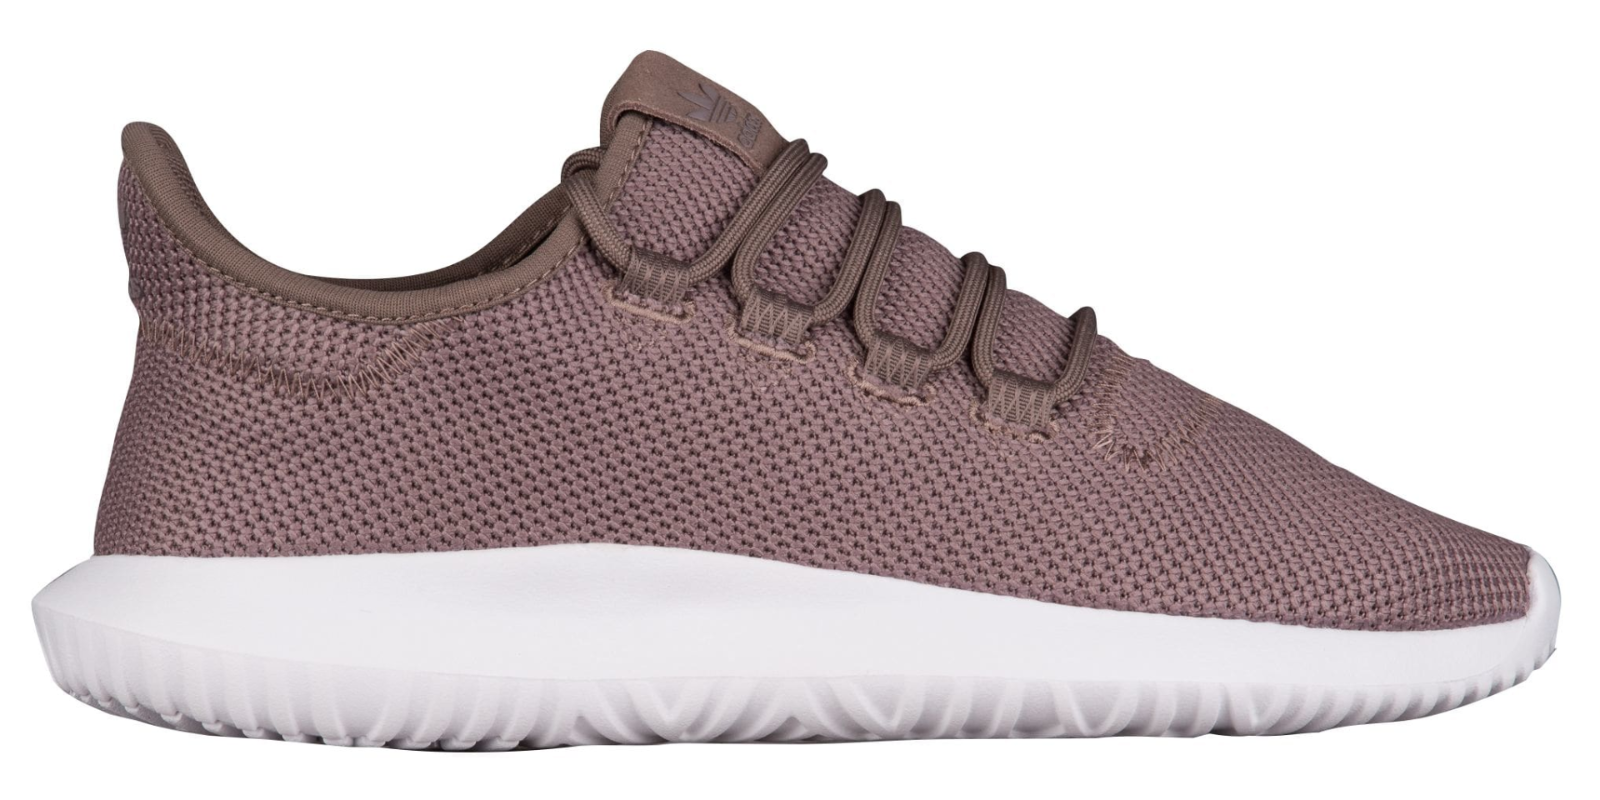 Adidas Tubular Shadow AC7796 Trace Brown/Trace Brown/White Originals Men Women